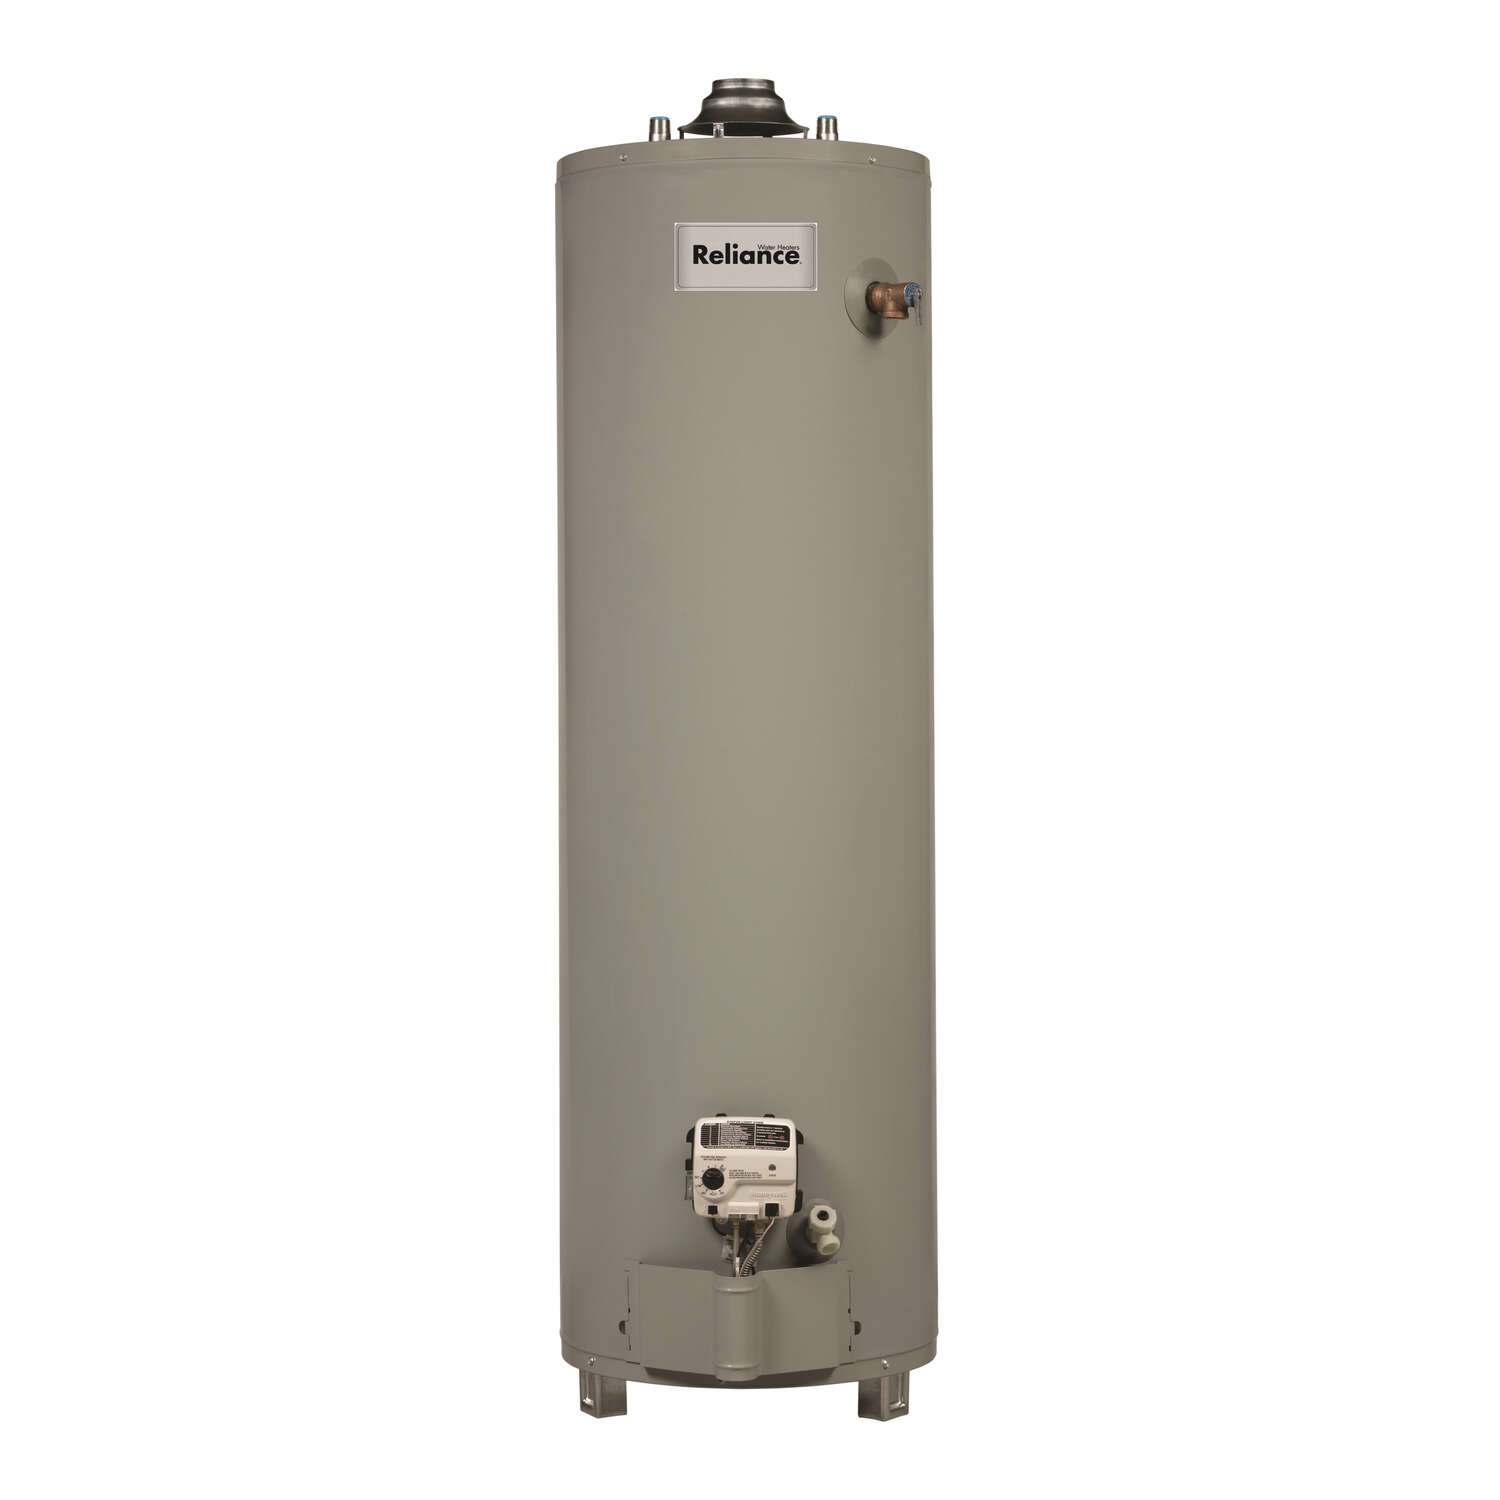 Reliance 40 Gal 40000 Btu Natural Gas Water Heater Ace Hardware